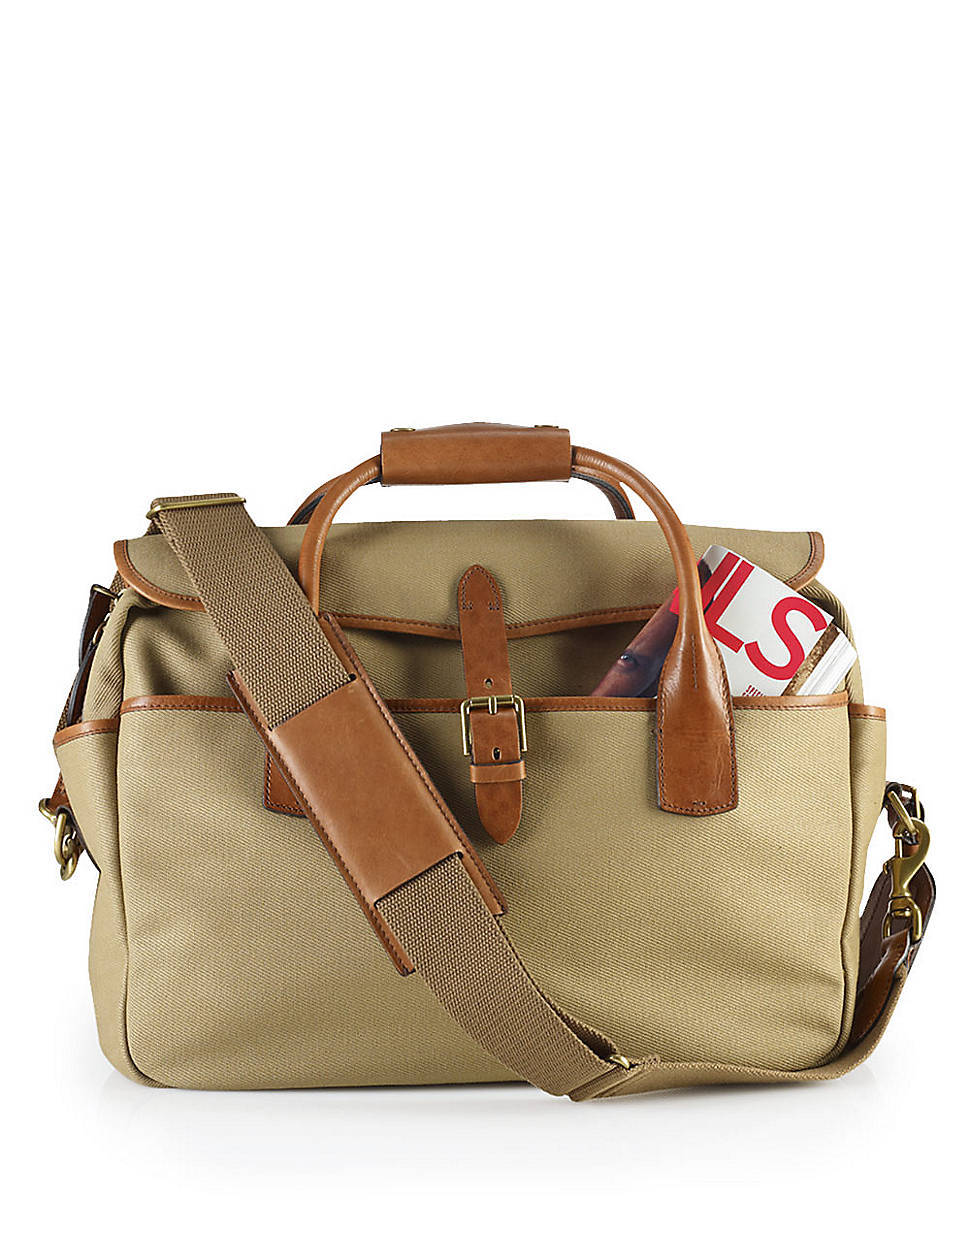 It's On Sale: Ralph Lauren Canvas Briefcase